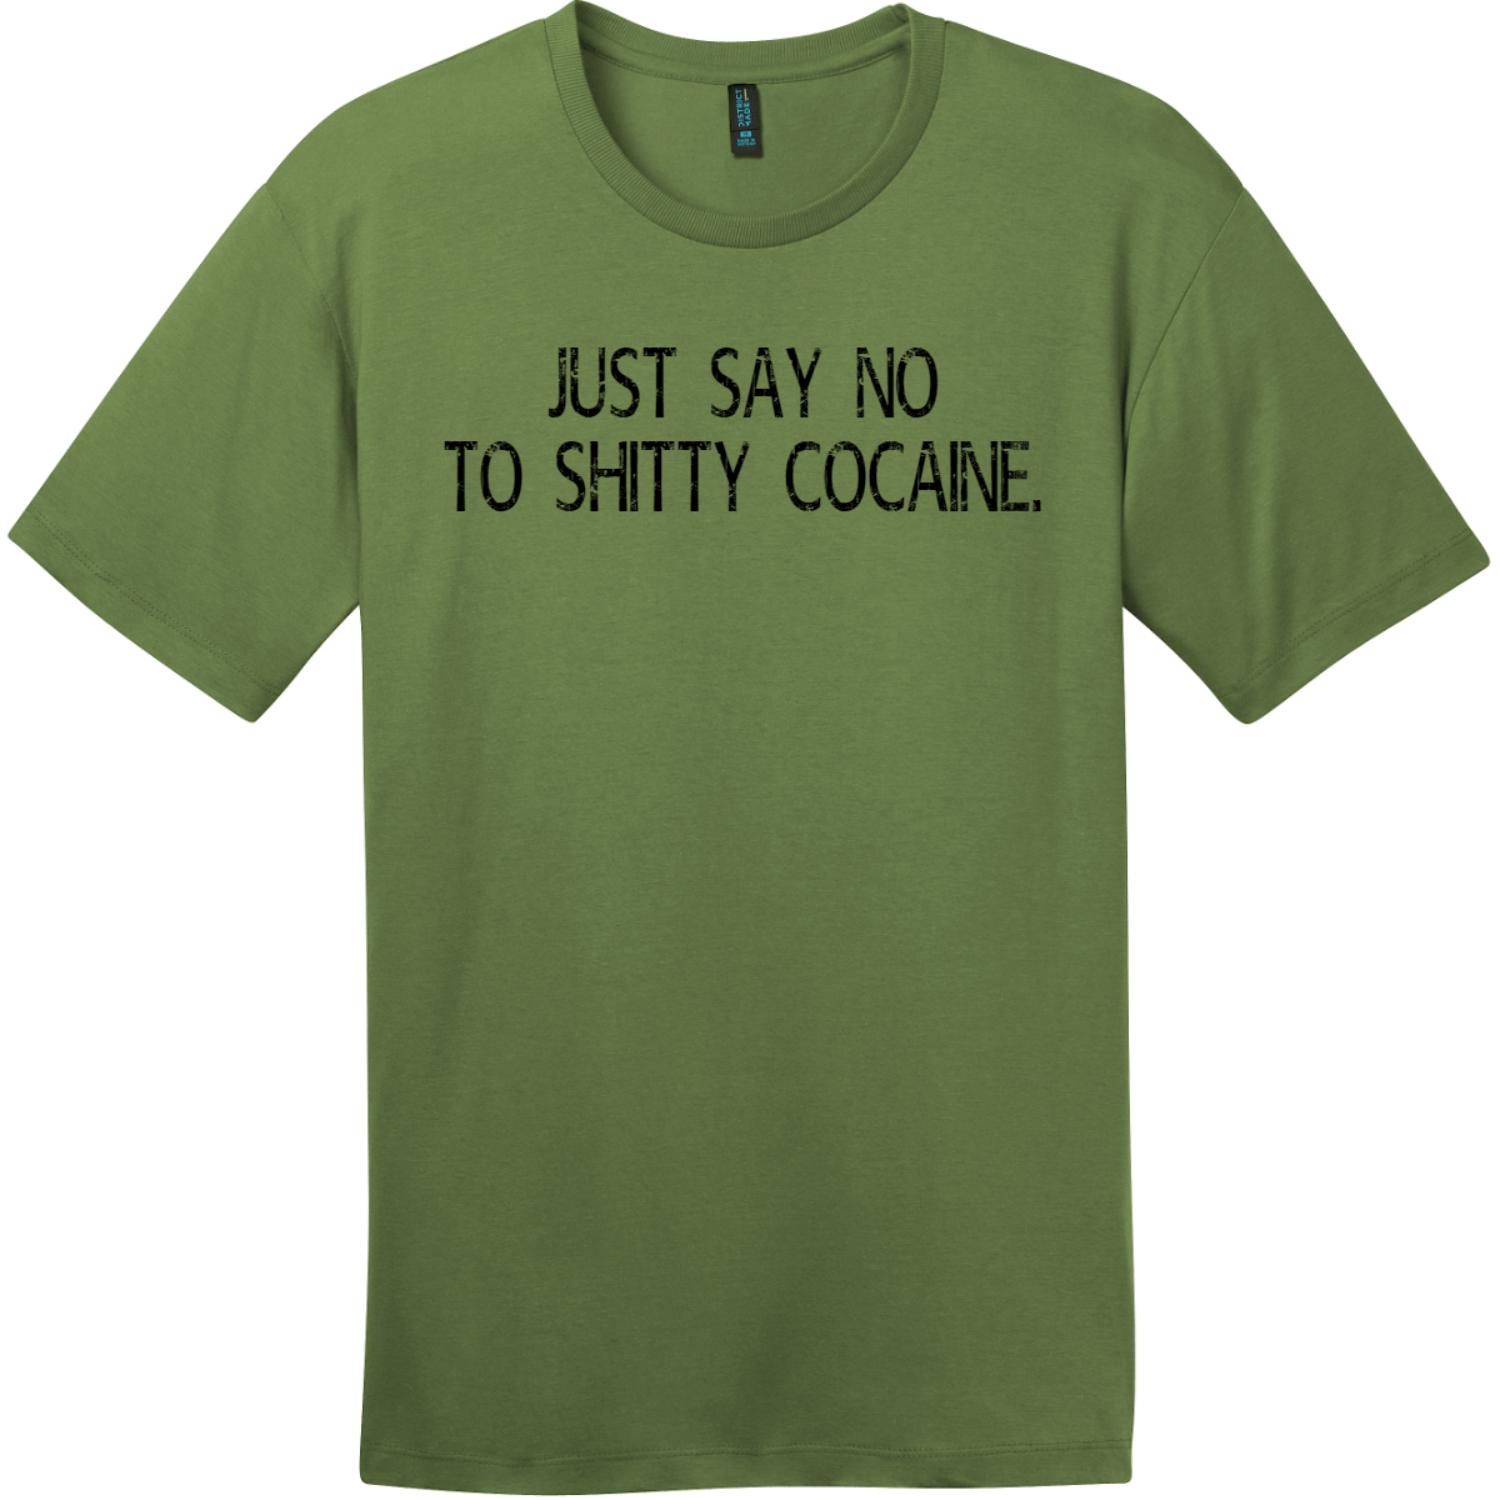 Just Say No To Shitty Cocaine T-Shirt Fresh Fatigue District Perfect Weight Tee DT104